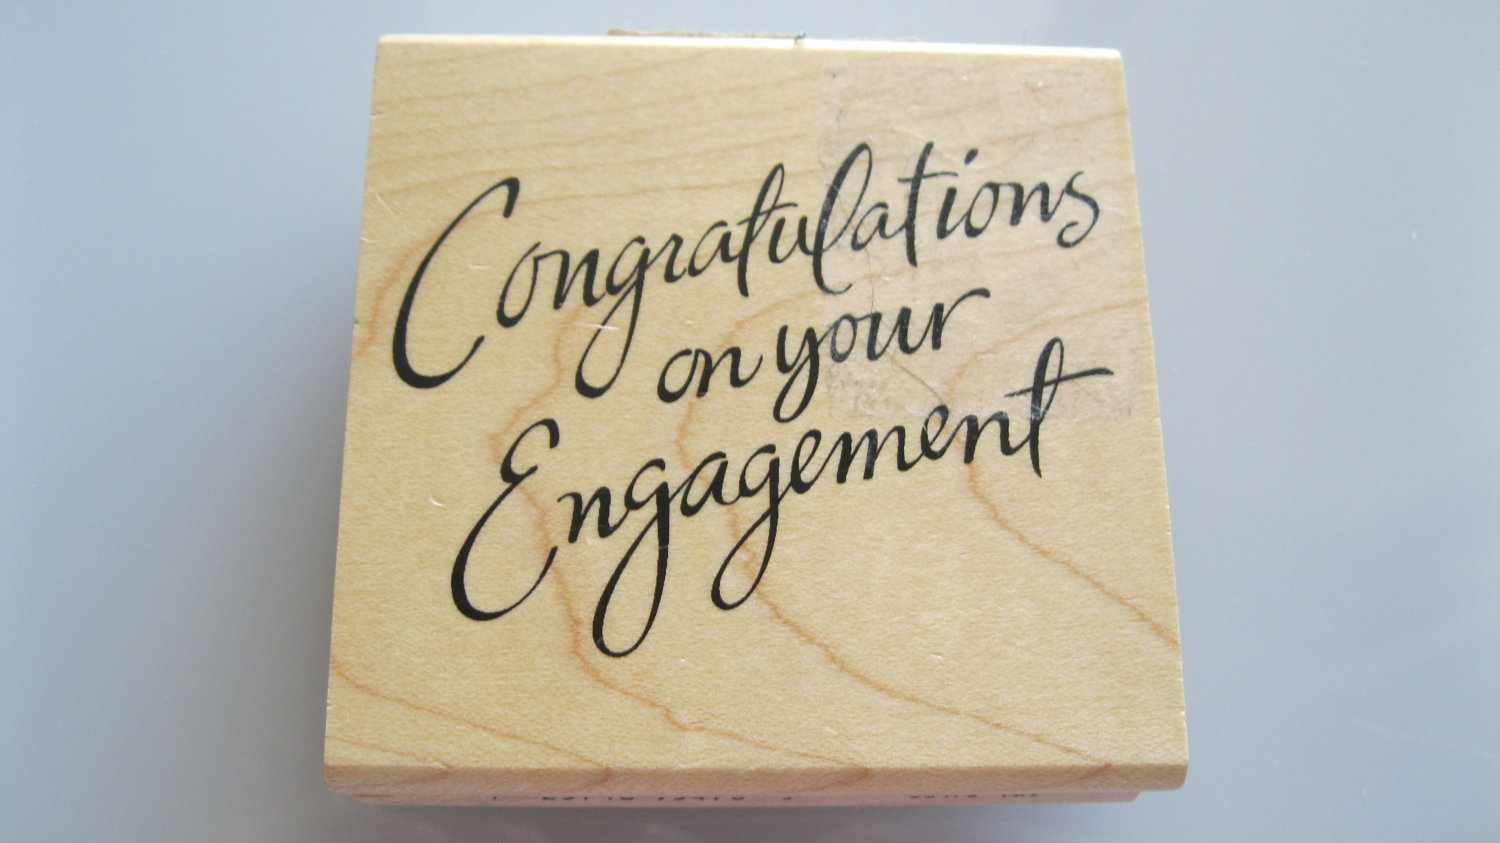 Engagement Cake Quotes. QuotesGram